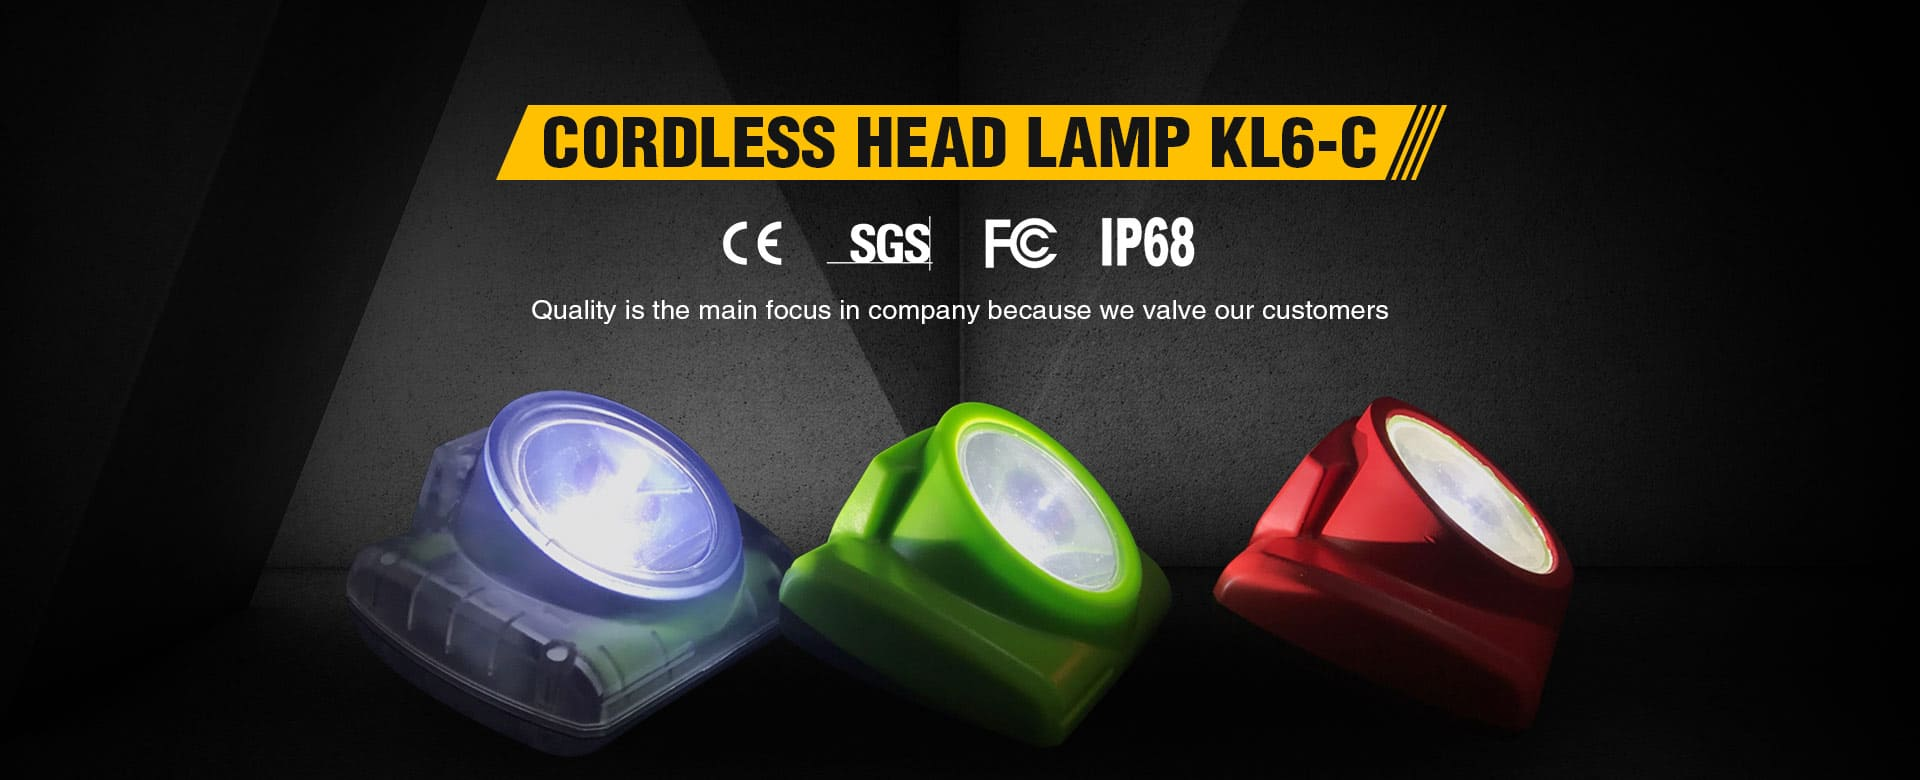 BRANDO LED Cordless Lamp KL6-C